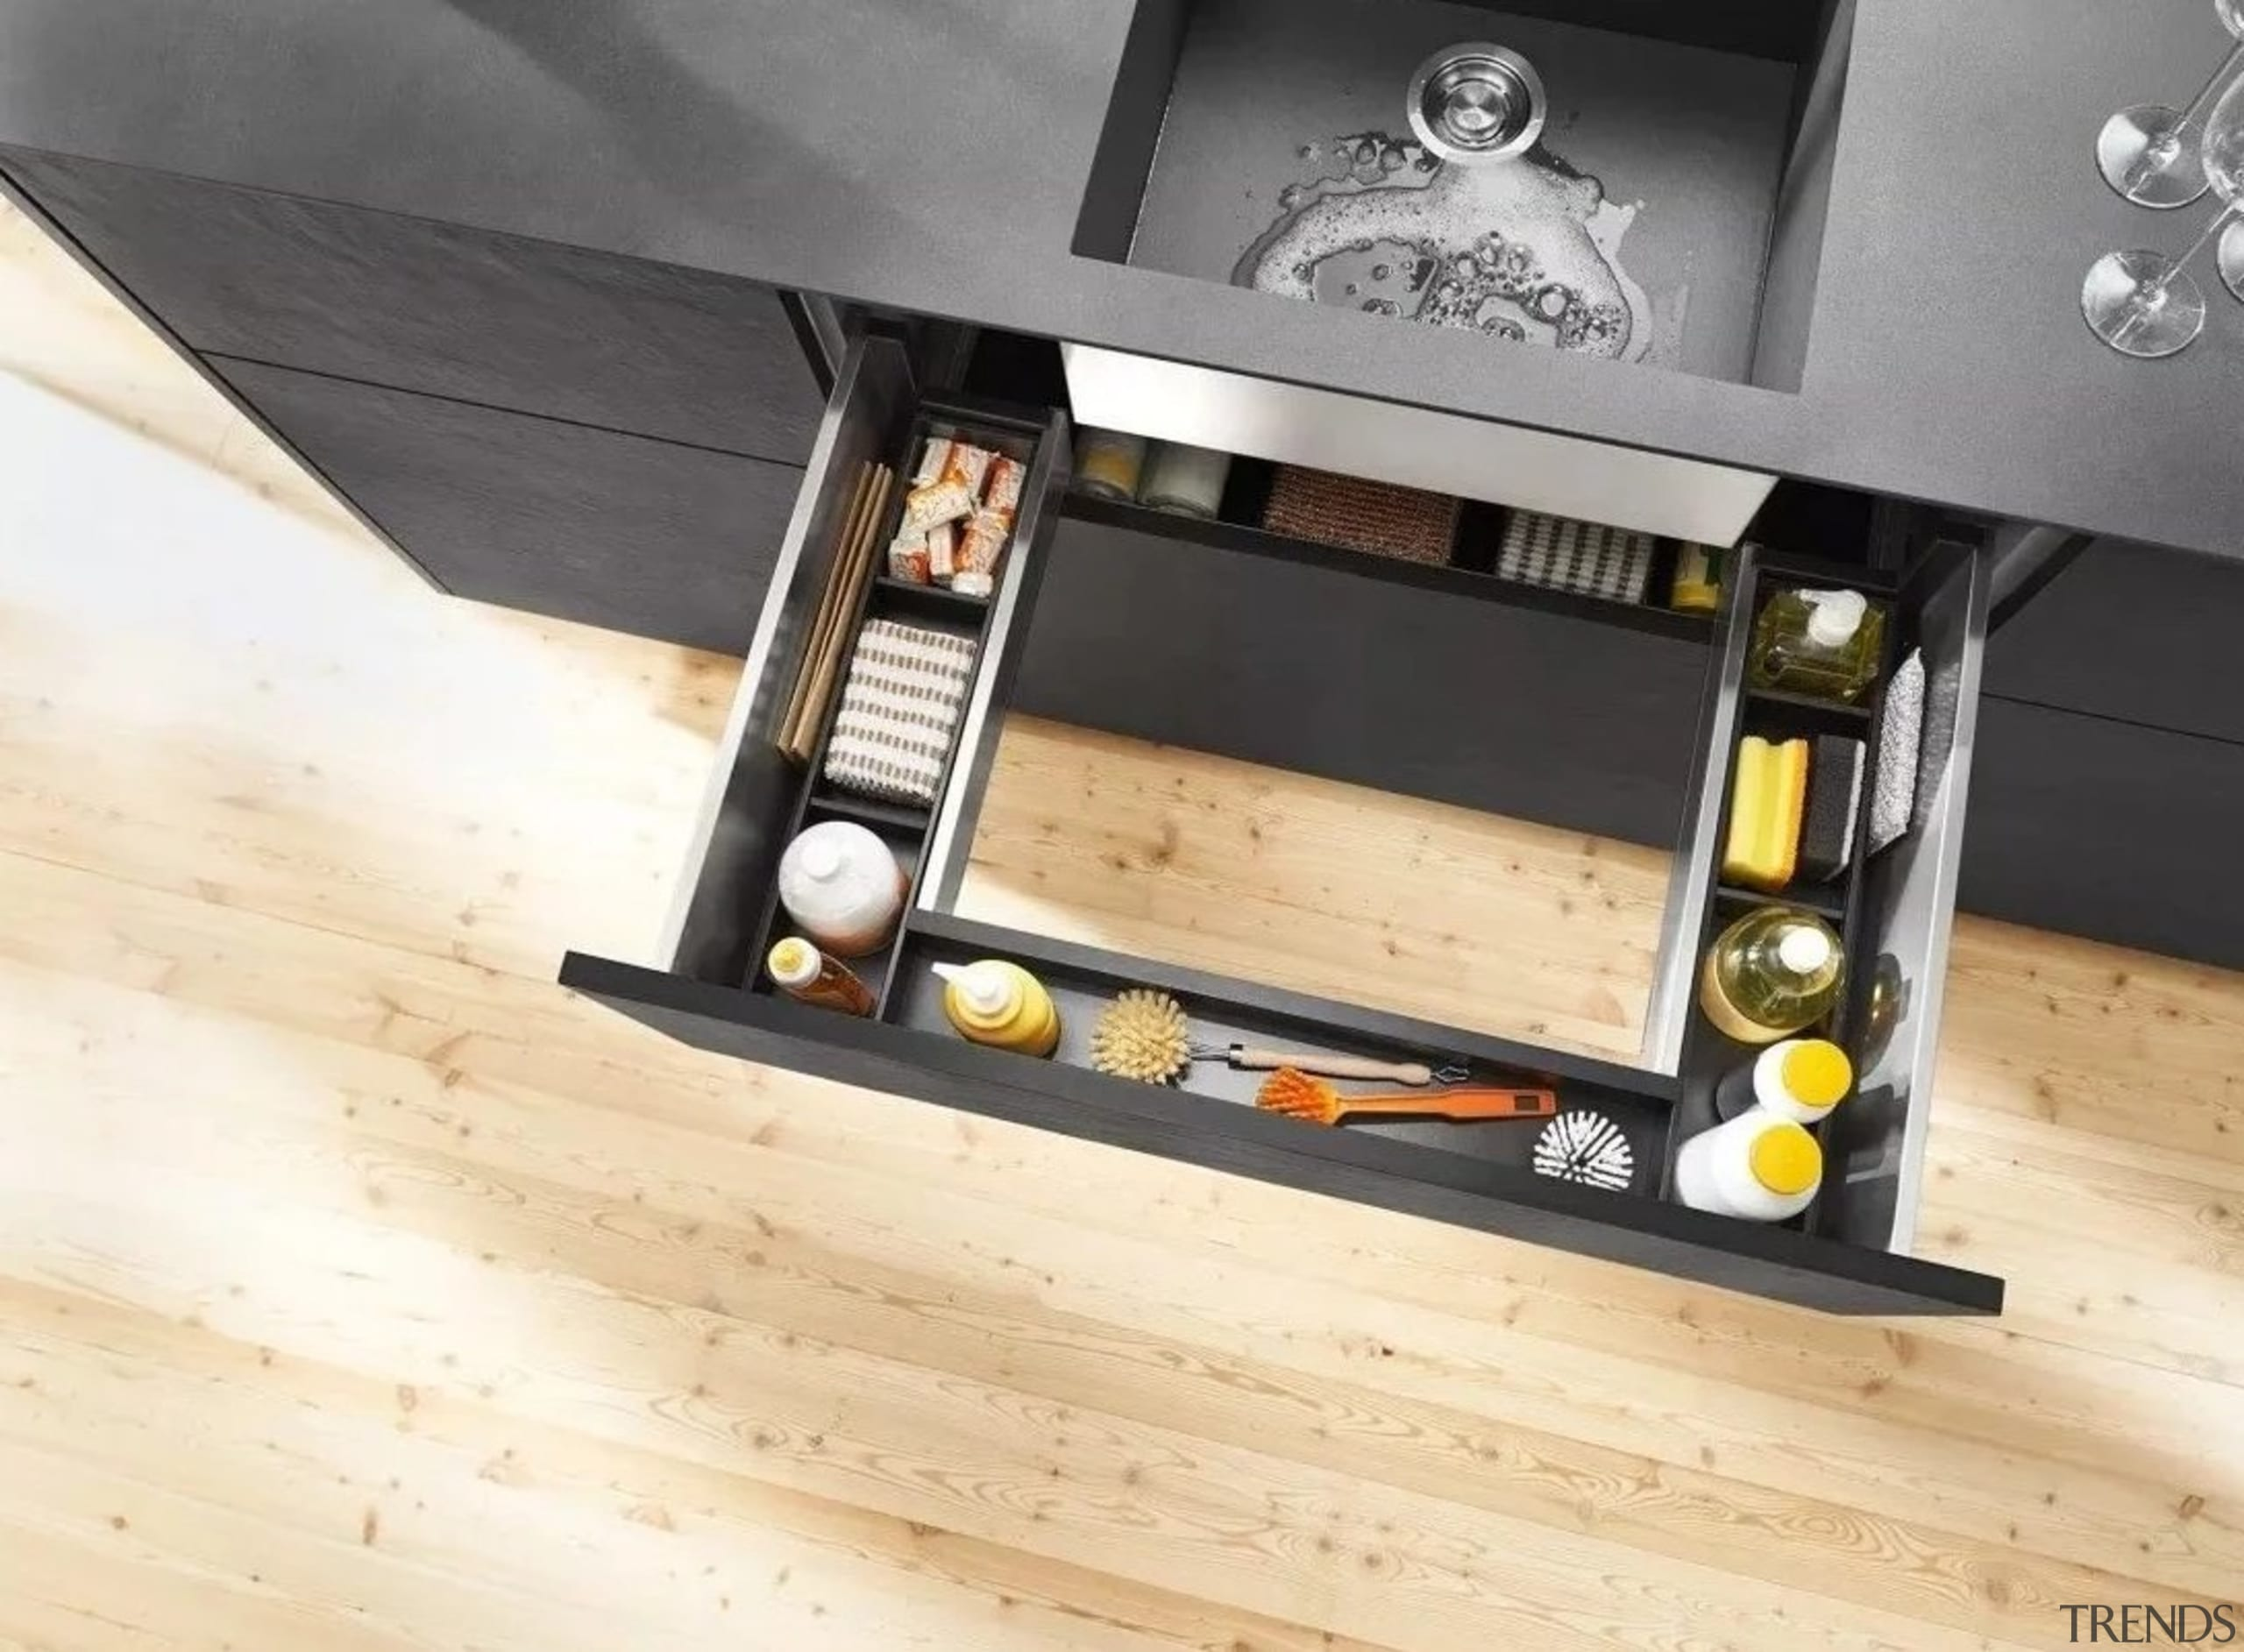 Image from: Blum New Zealand floor, flooring, furniture, product design, table, wood, yellow